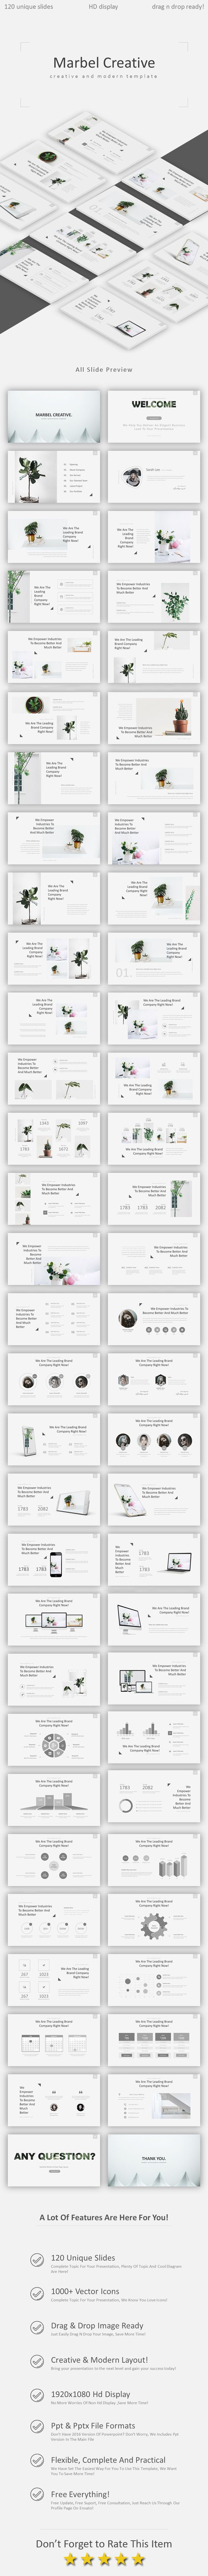 Marbel Minimal Powerpoint — Powerpoint PPT #map #hierarchy team • Available here ➝ https://graphicriver.net/item/marbel-minimal-powerpoint/20834170?ref=pxcr